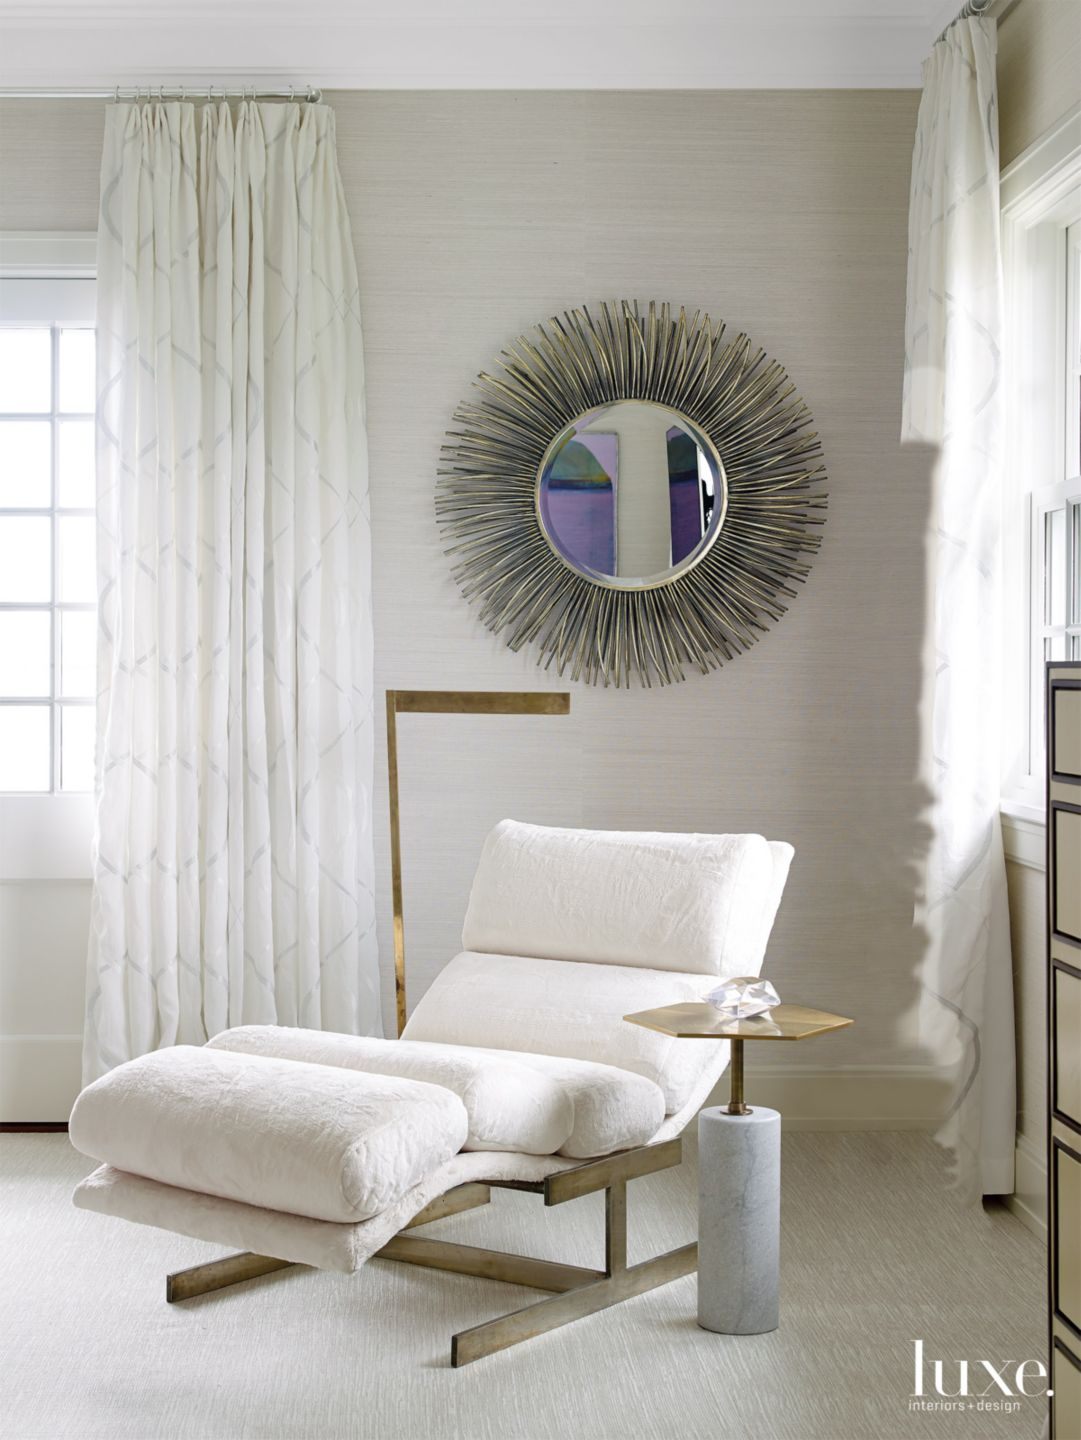 Modern Cream Bedroom Seating Area with Vintage Chaise